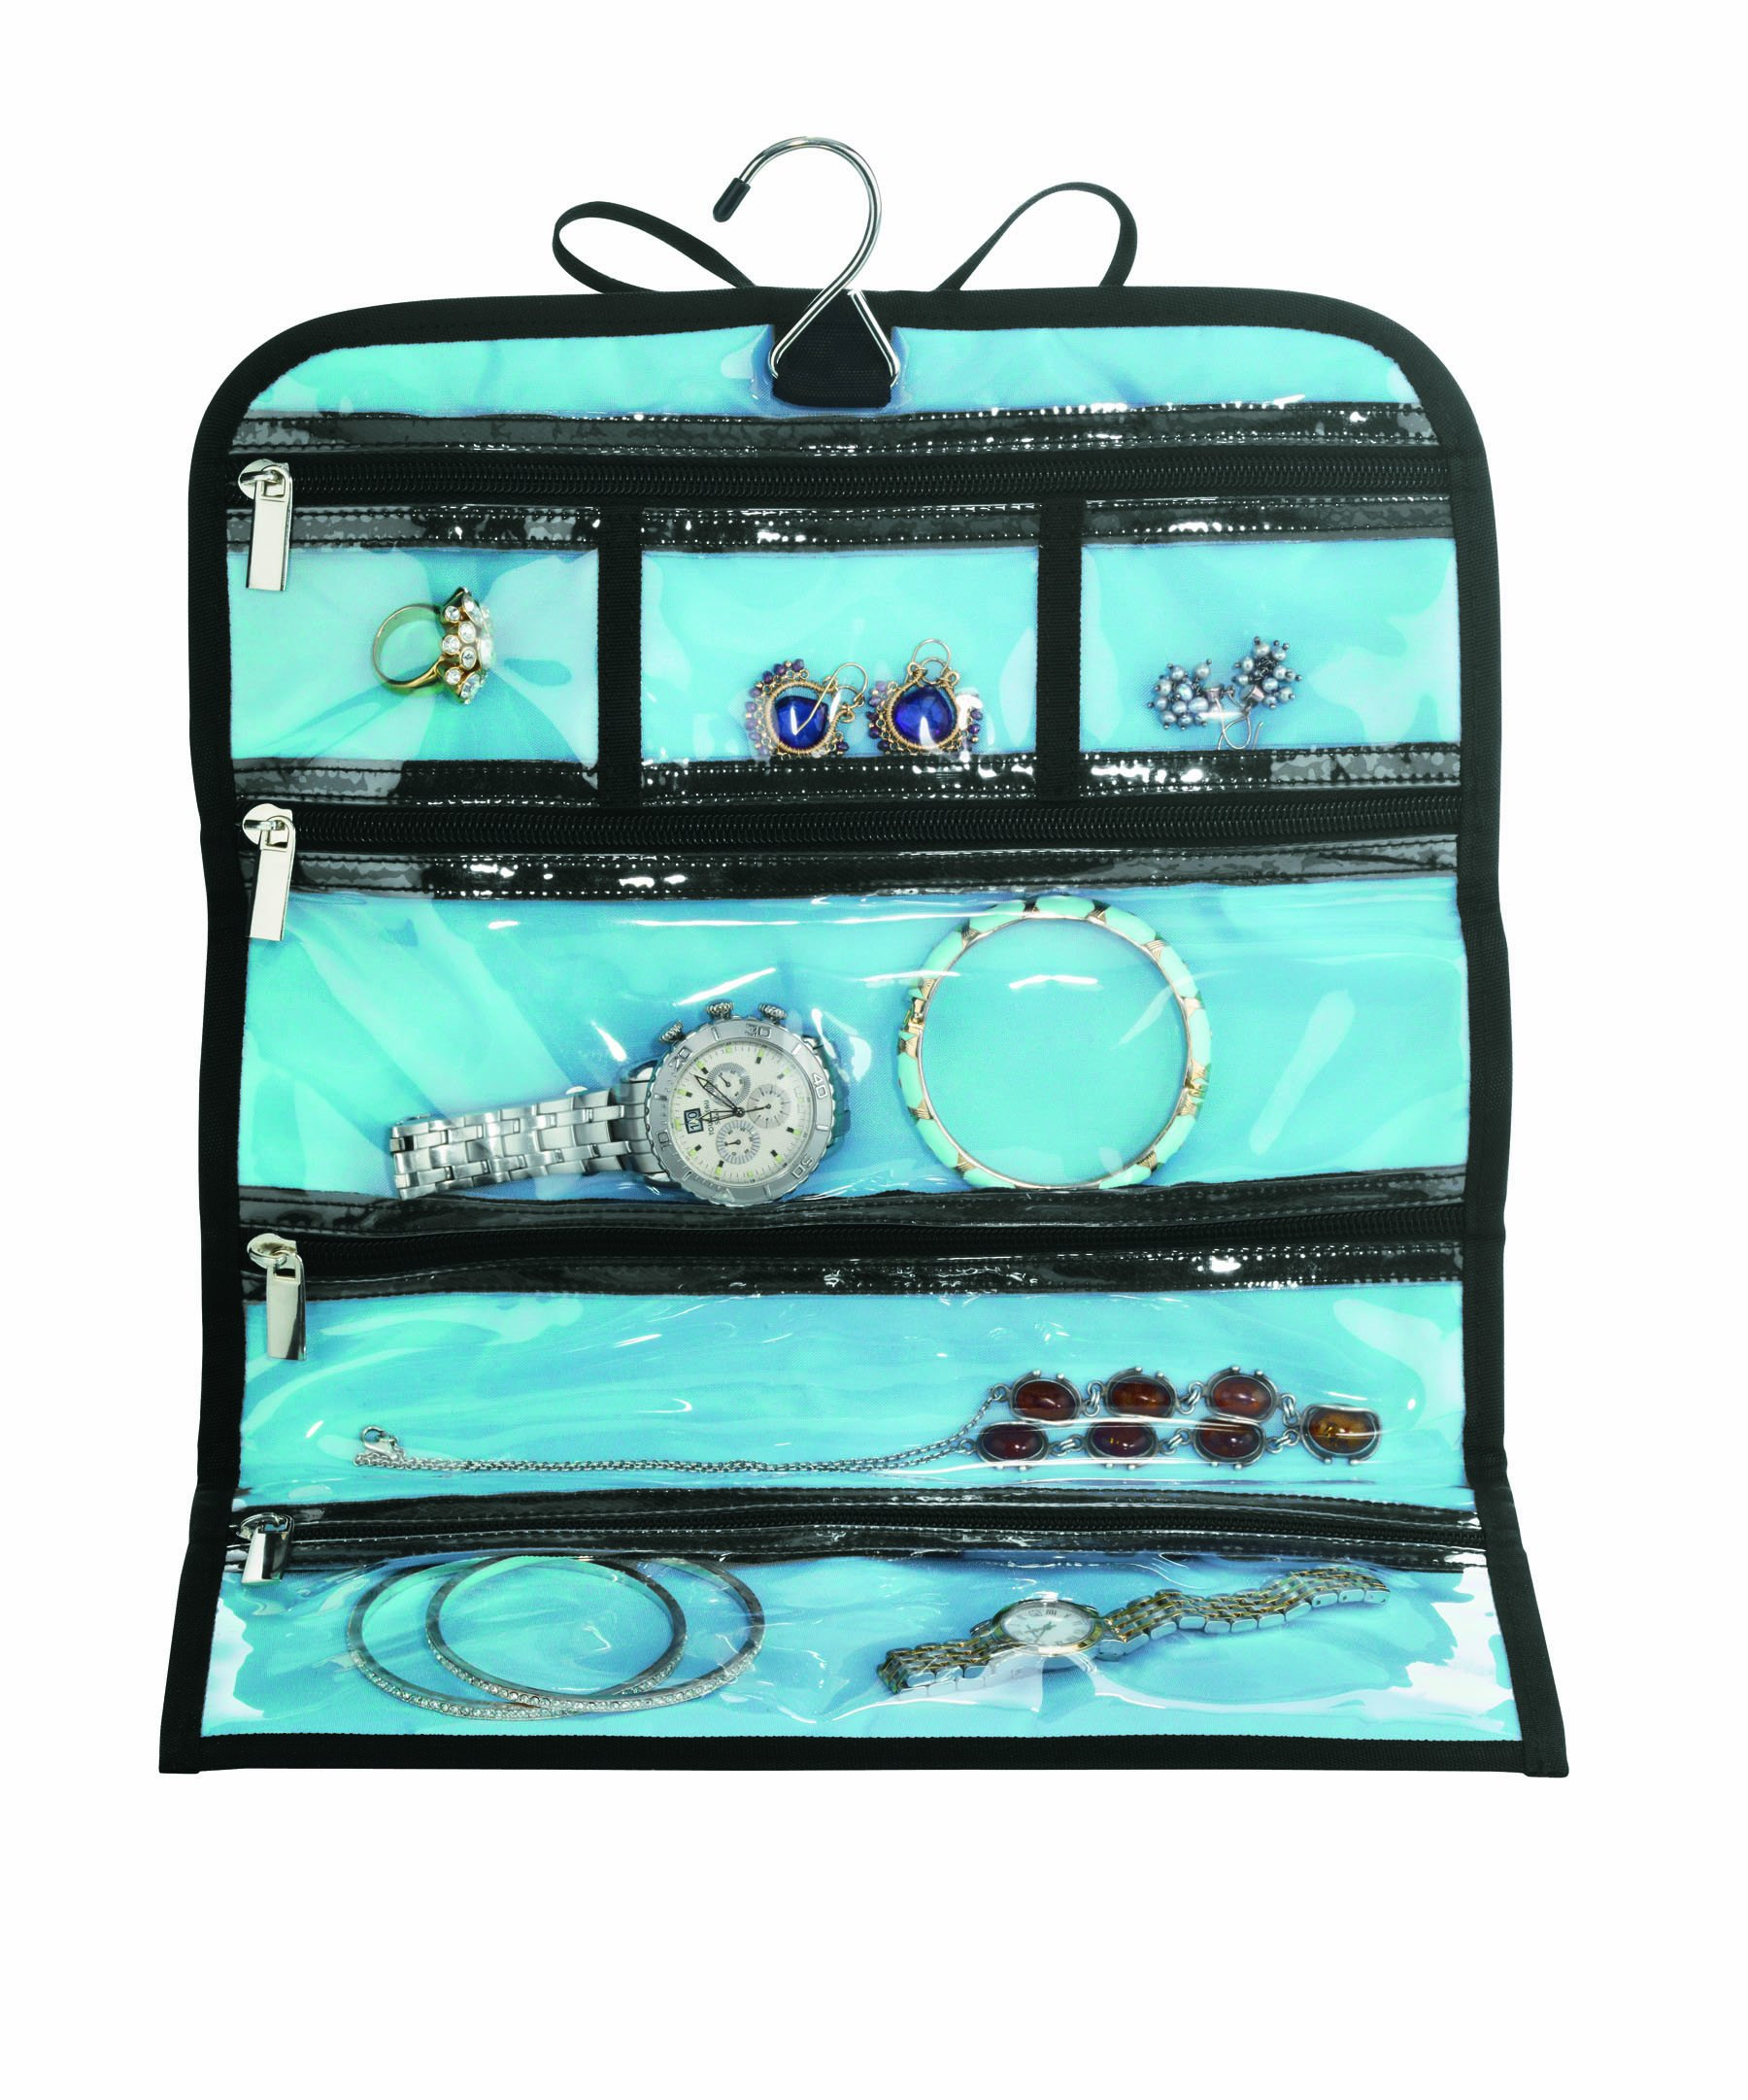 Galleon Travel Smart By Conair Jewelry Roll Bag